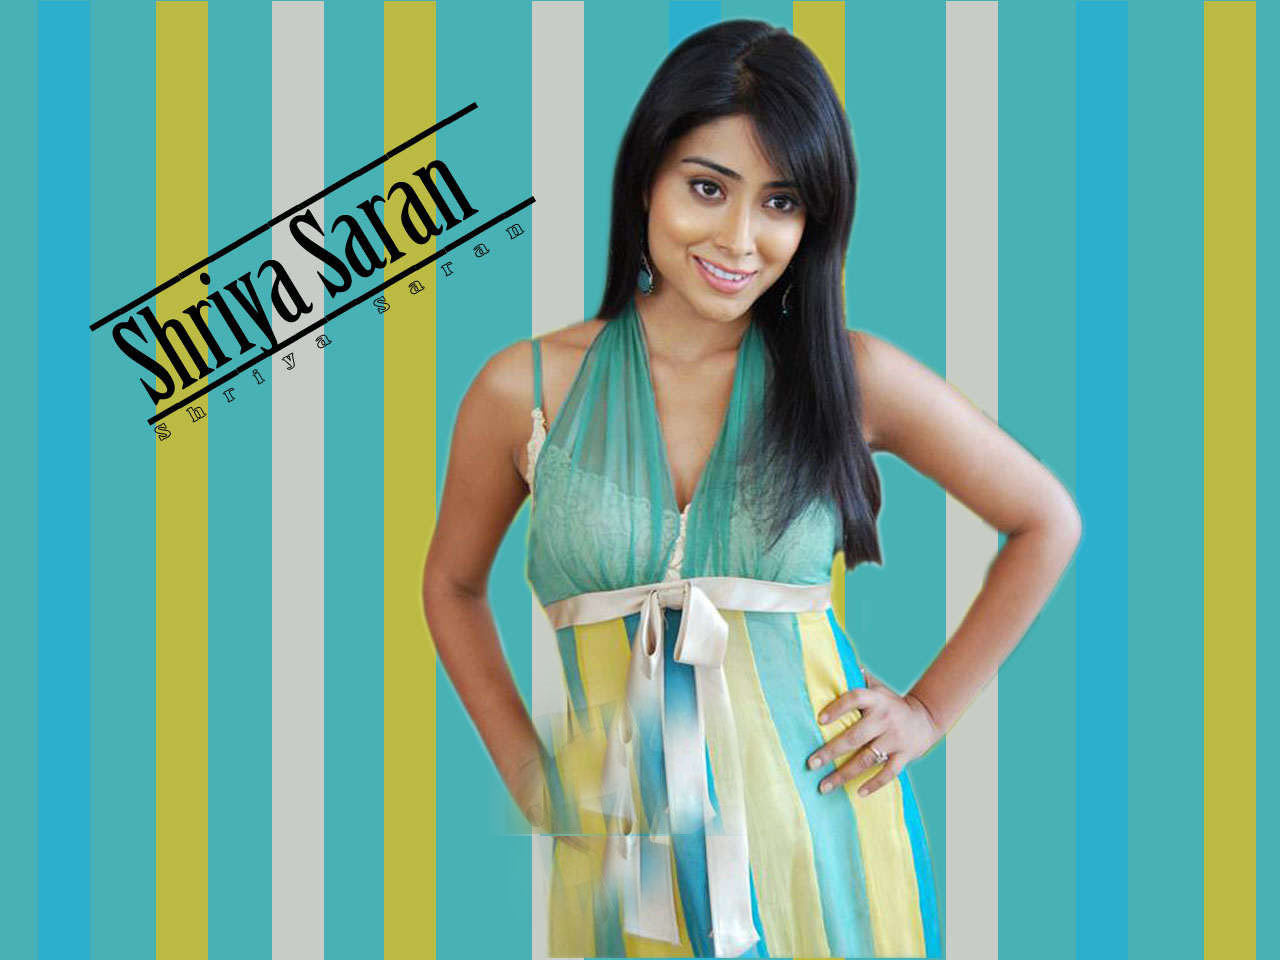 hd wallpapers for desktop: shriya saran wallpapers